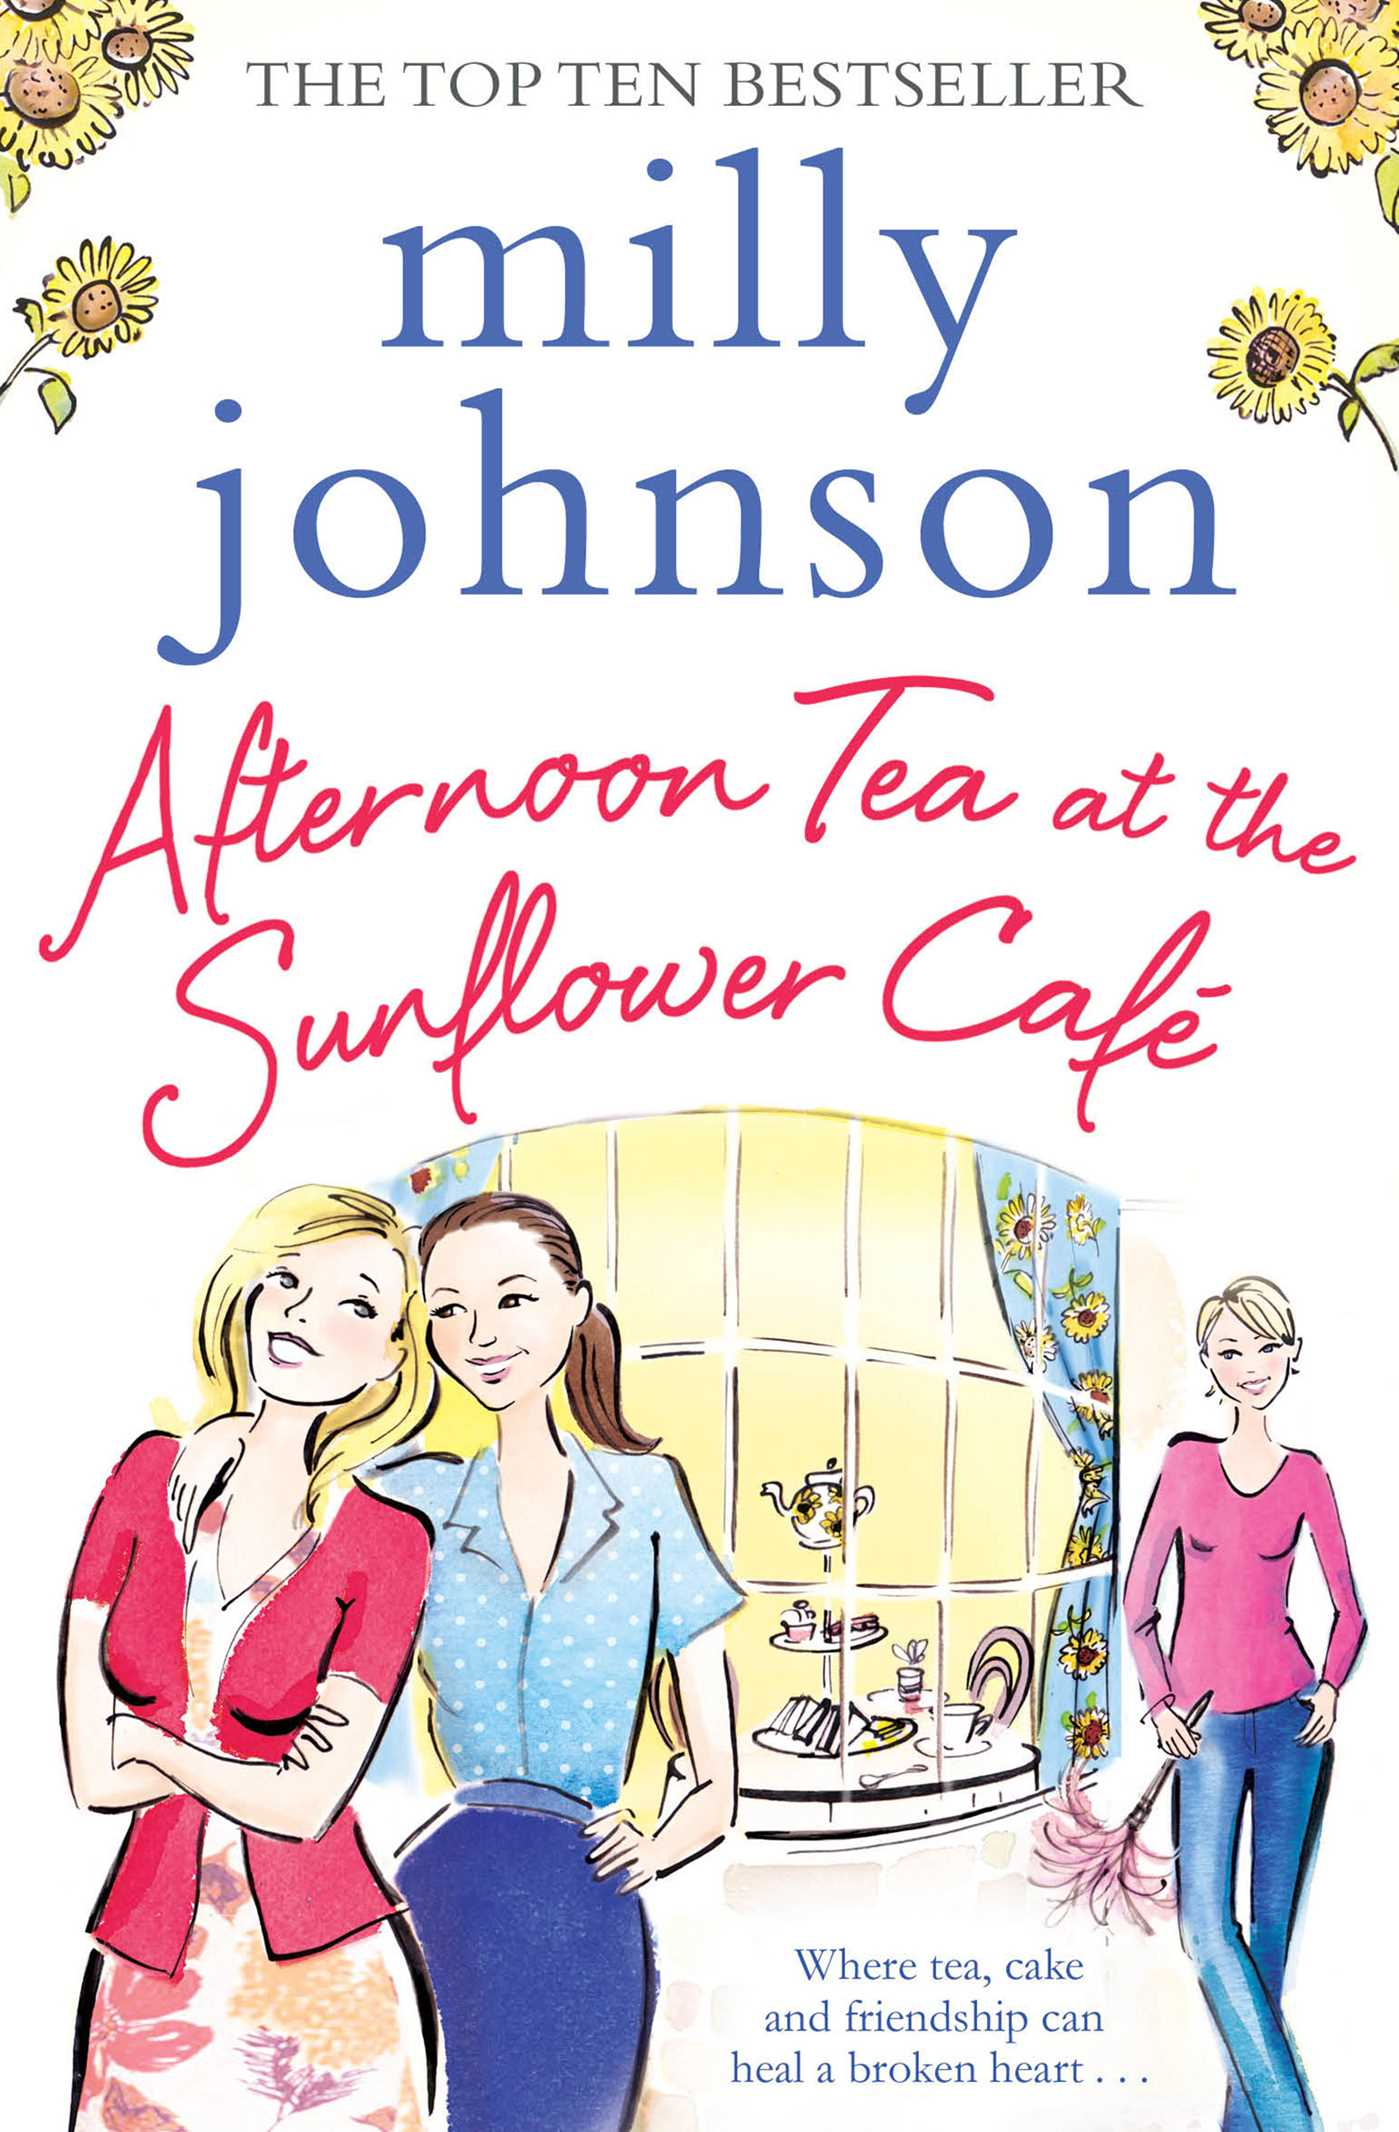 Afternoon tea at the sunflower cafe 9781471140464 hr